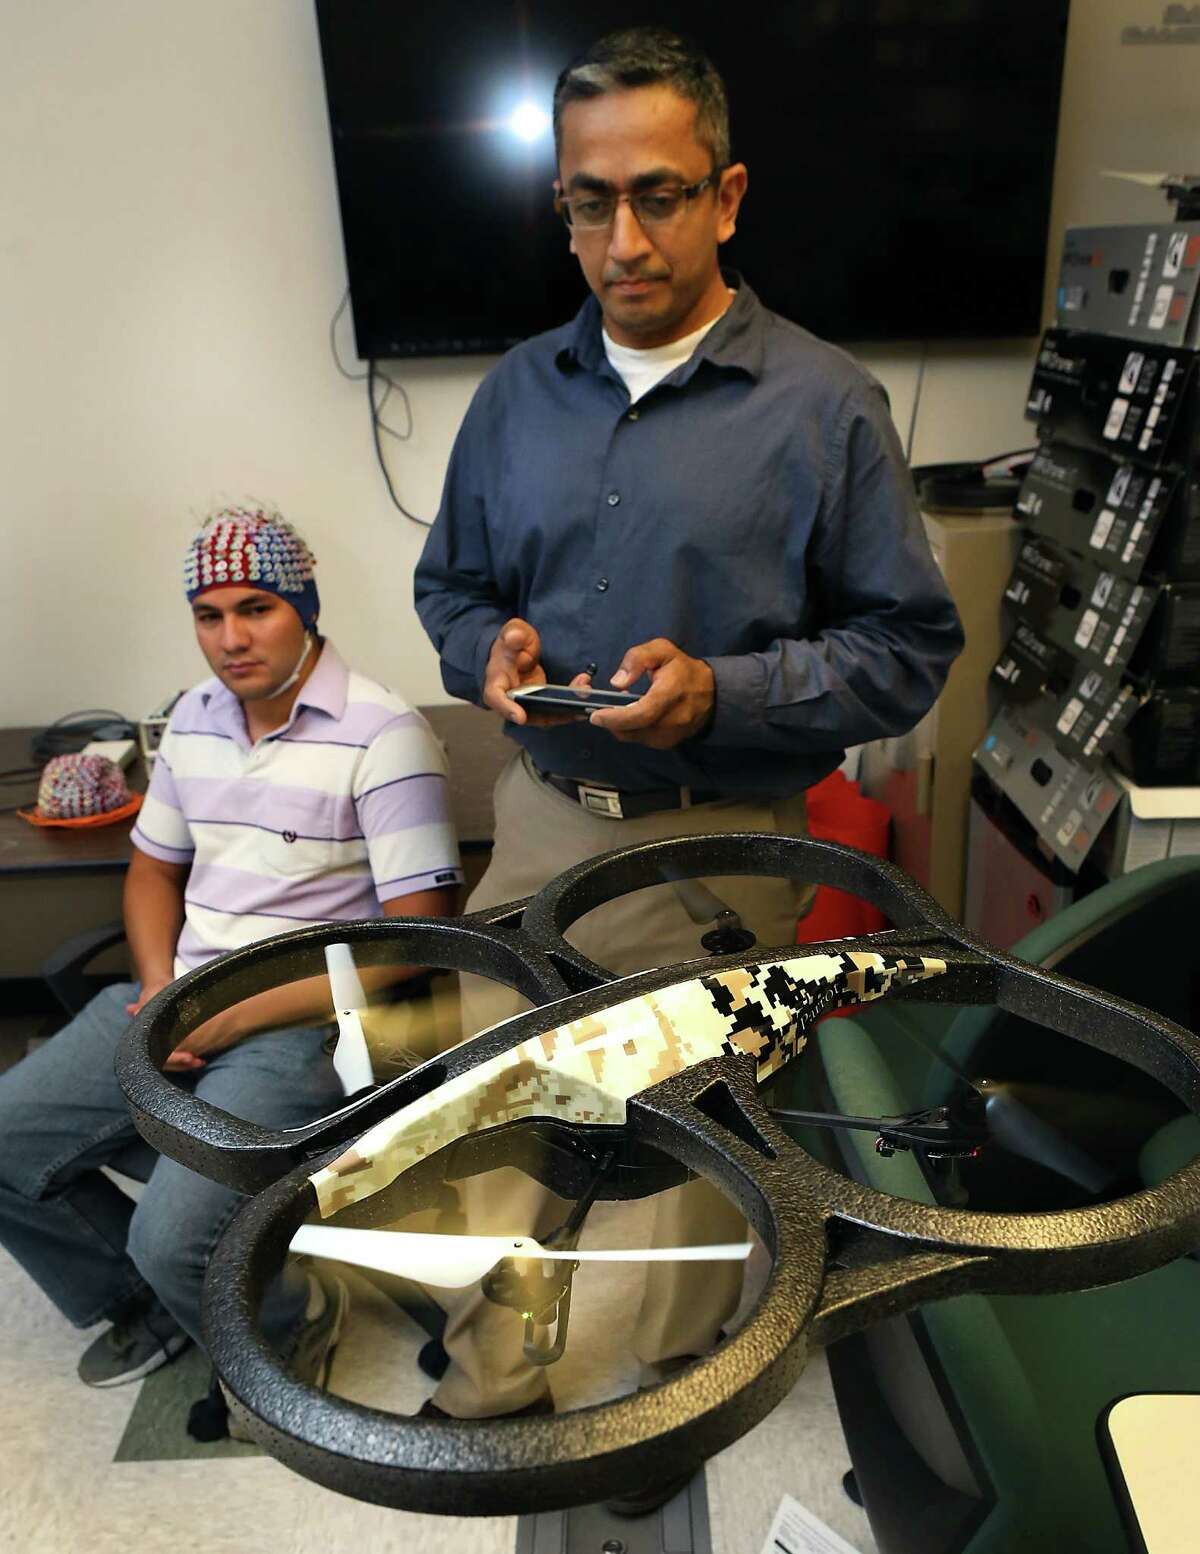 Prasanna Kolar, right, a masters student in Computer Engineering at UTSA, controls a quad copter through an app on his smart phone. Kolar and other students at UTSA's Electrical and Computer Engineering Department are studying how to control a drone with brain waves collected by the electroencephalogram system (cap) worn by Mauricio Merino, left, a masters student in Electrical Engineering. A grant from the Department of Defense will enable UTSA's drone researchers to acquire two state-of-the-art systems to analyze brain waves and applying that knowledge to control drones with brain waves. Wednesday, August. 27, 2014.